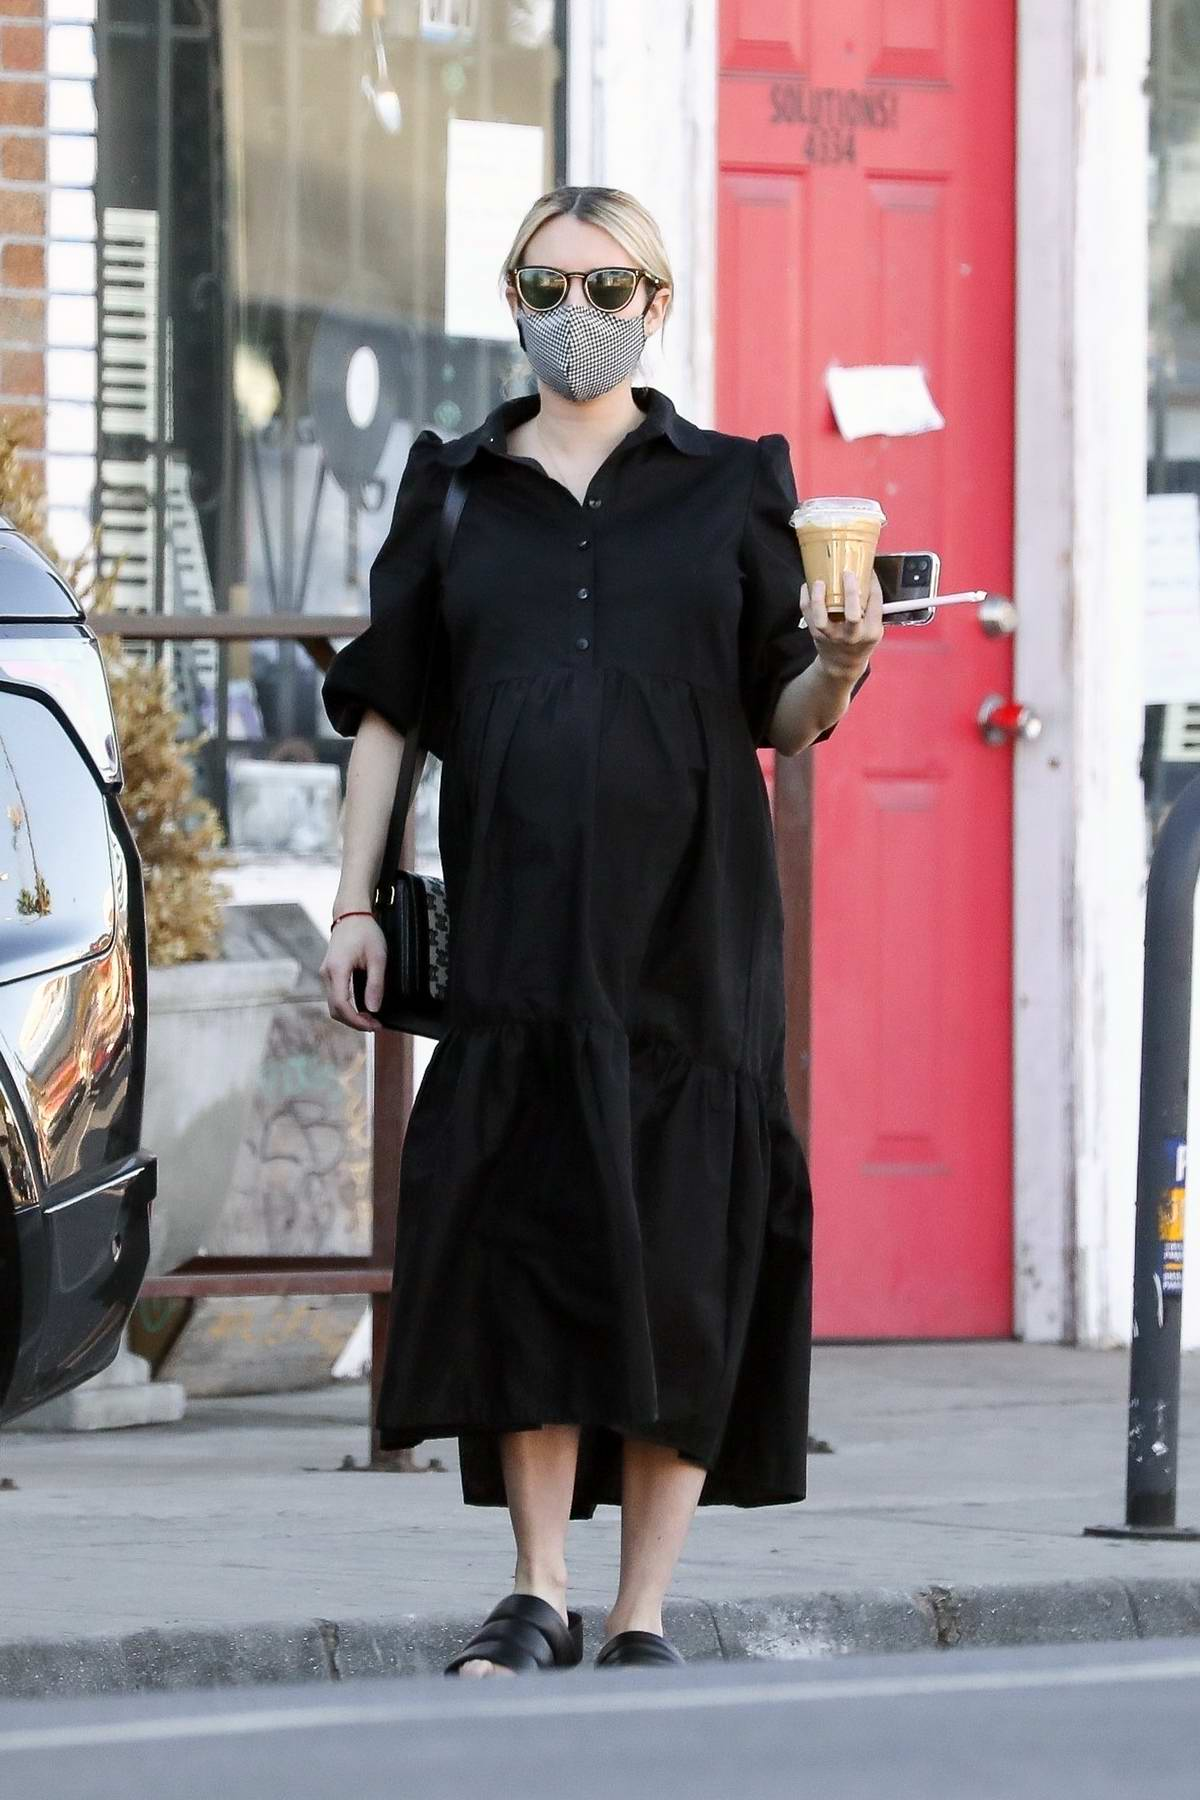 Emma Roberts wears a black dress while picking up some coffee to go while out running errands in Los Angeles